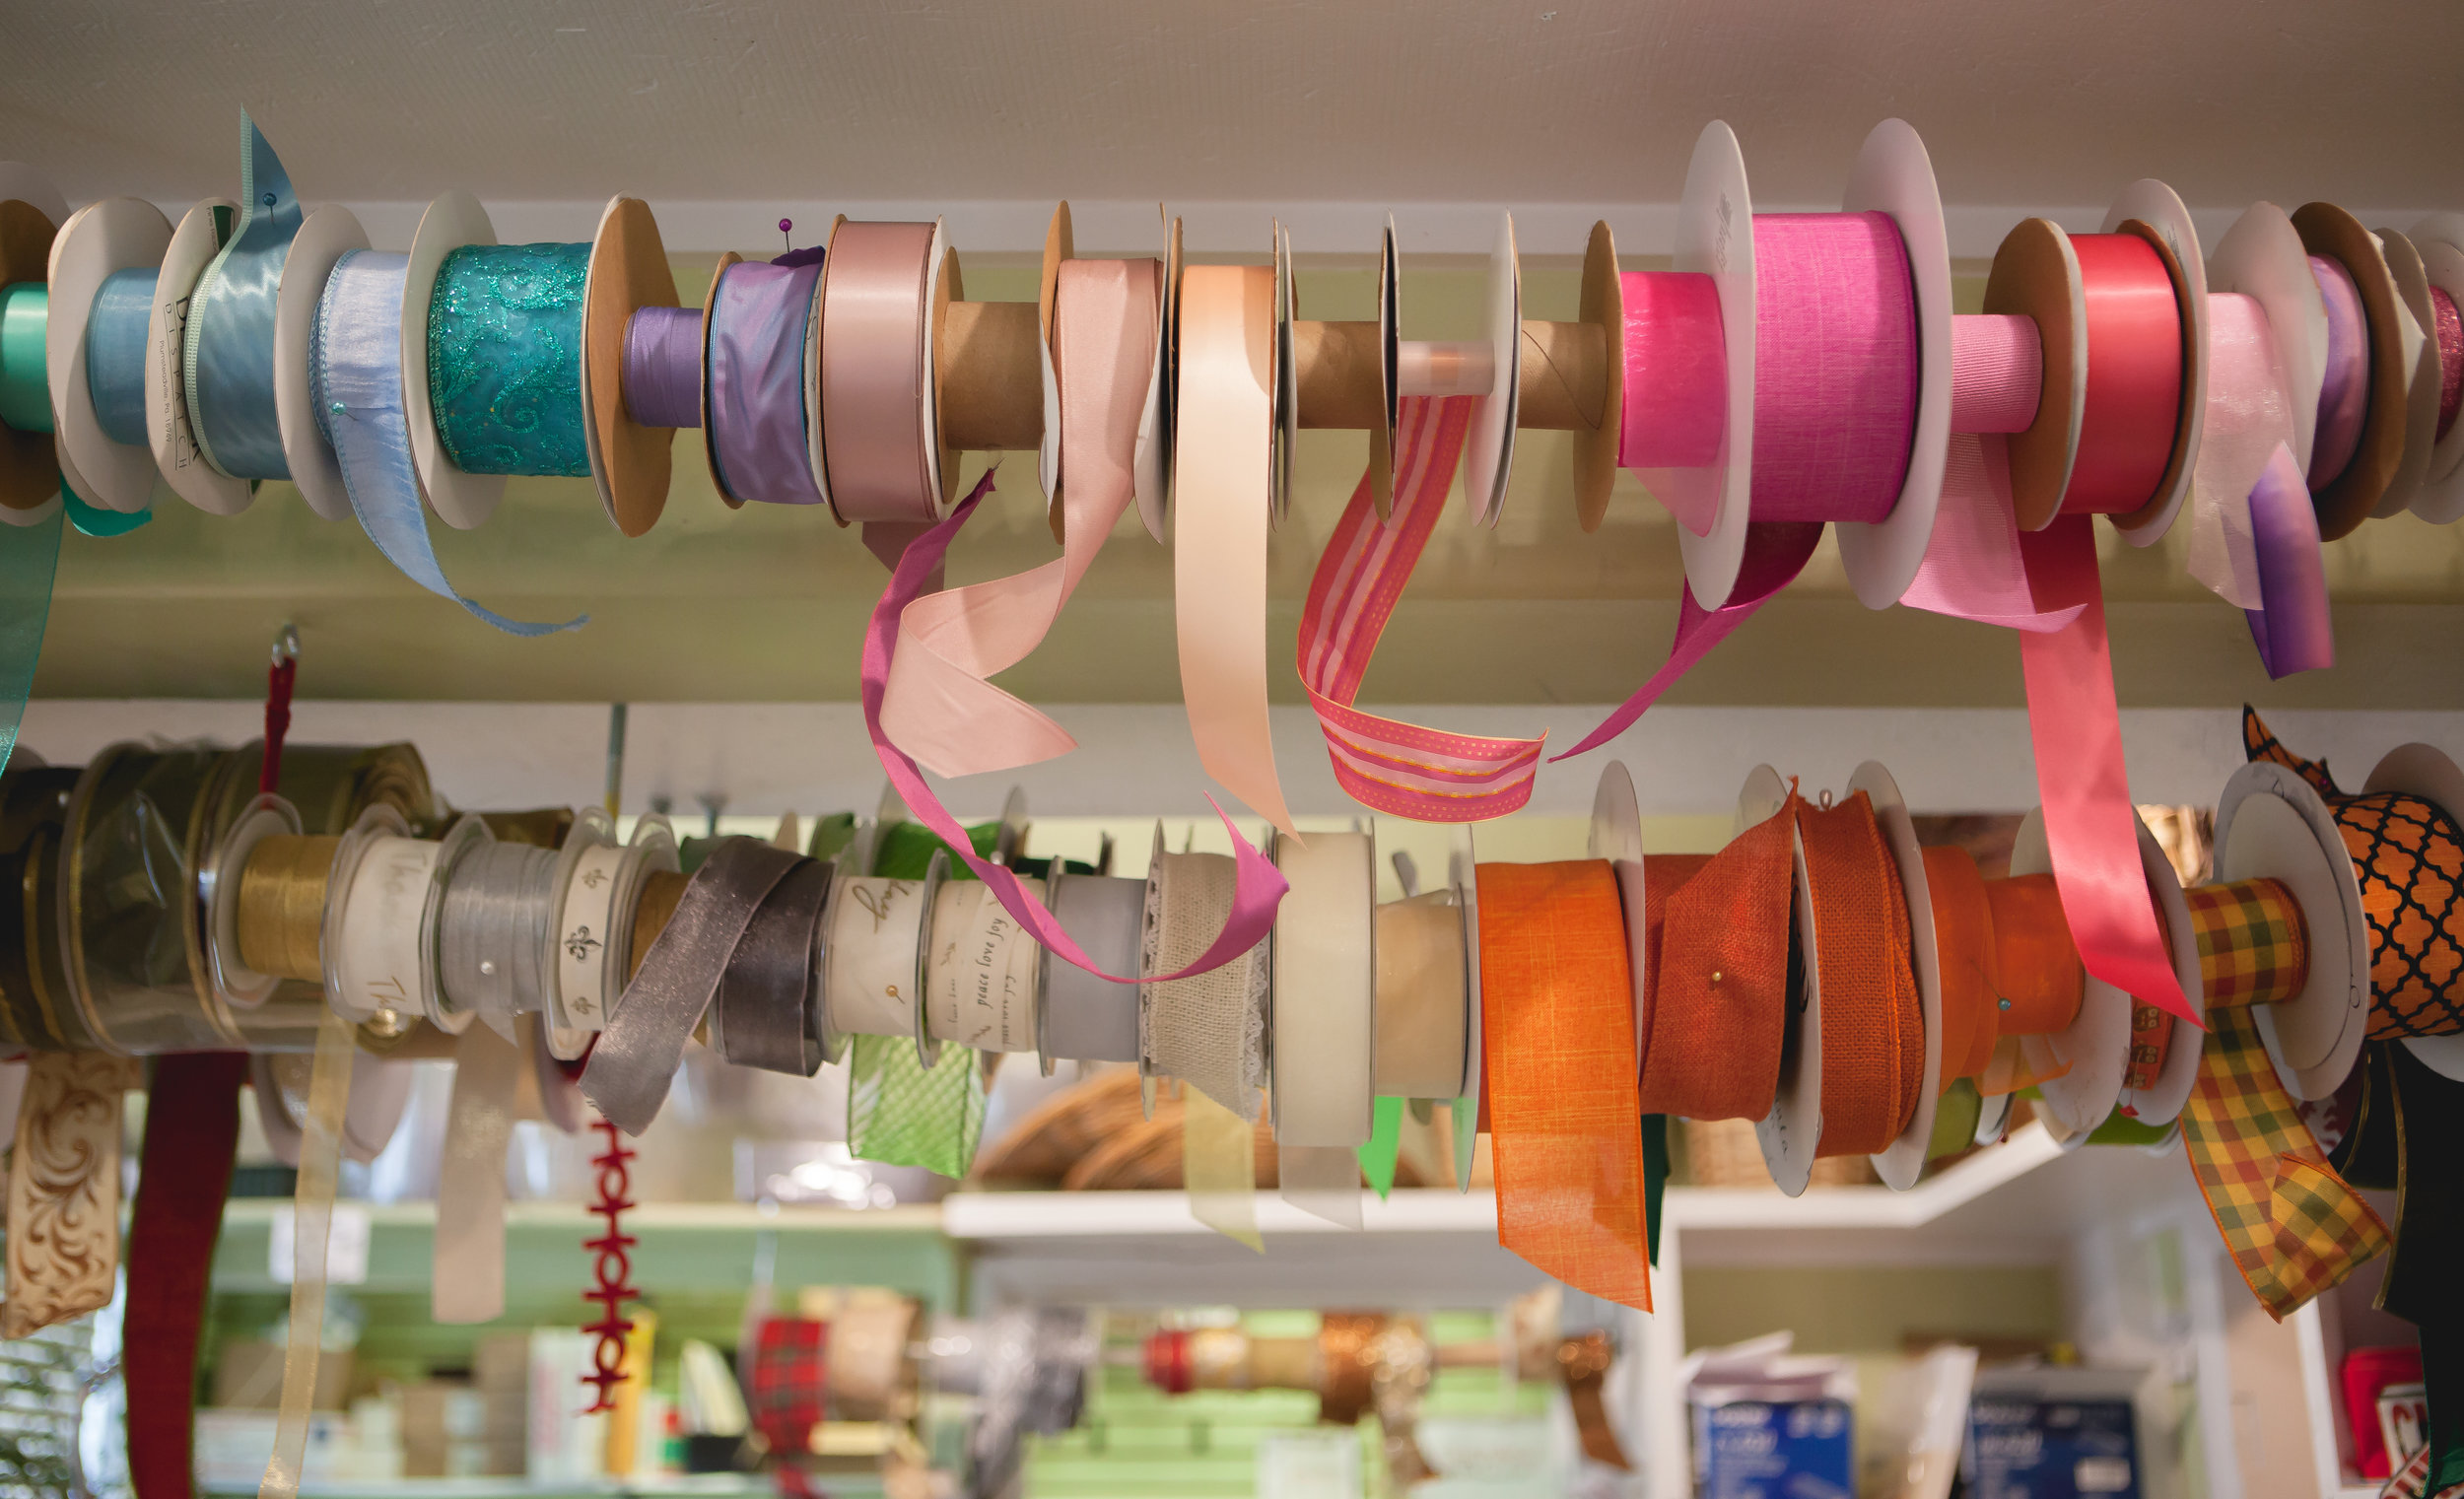 Just a small selection of ribbons that hang from the cieling in the workshop